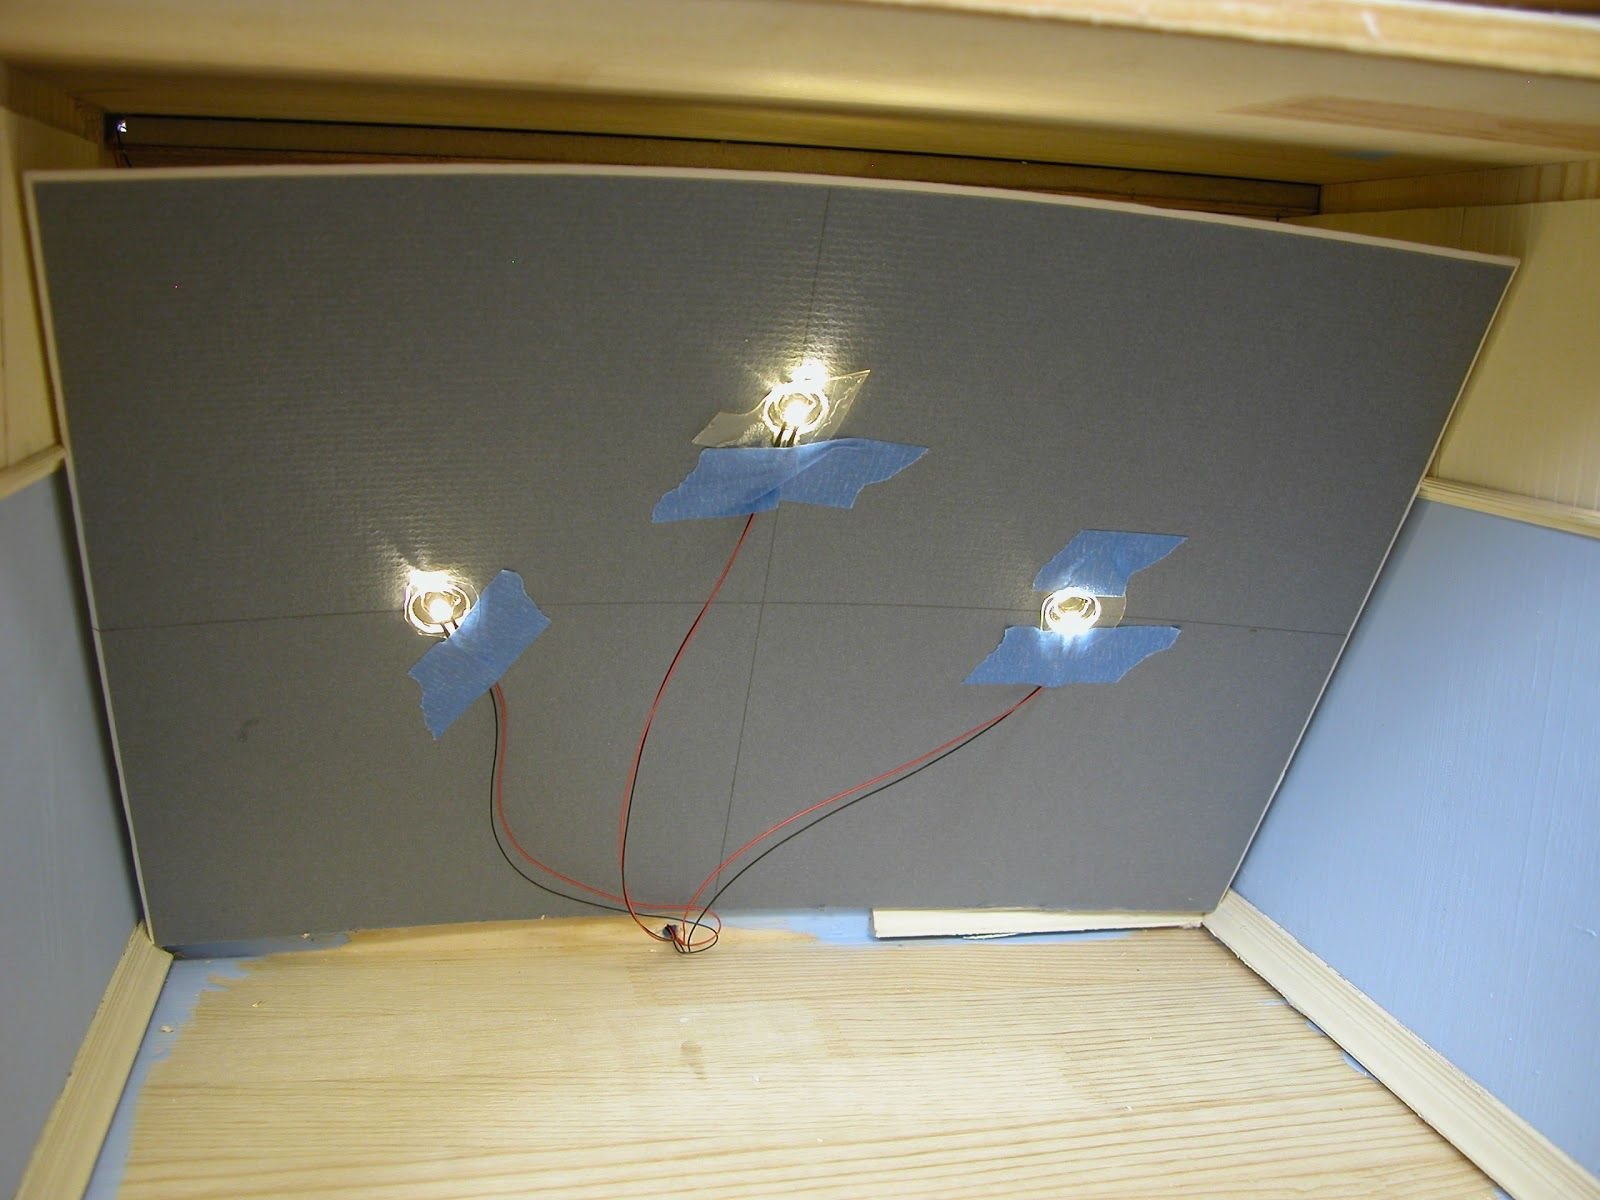 LED wiring for Dollhouse Miniatures: Moving On to Other LED Projects